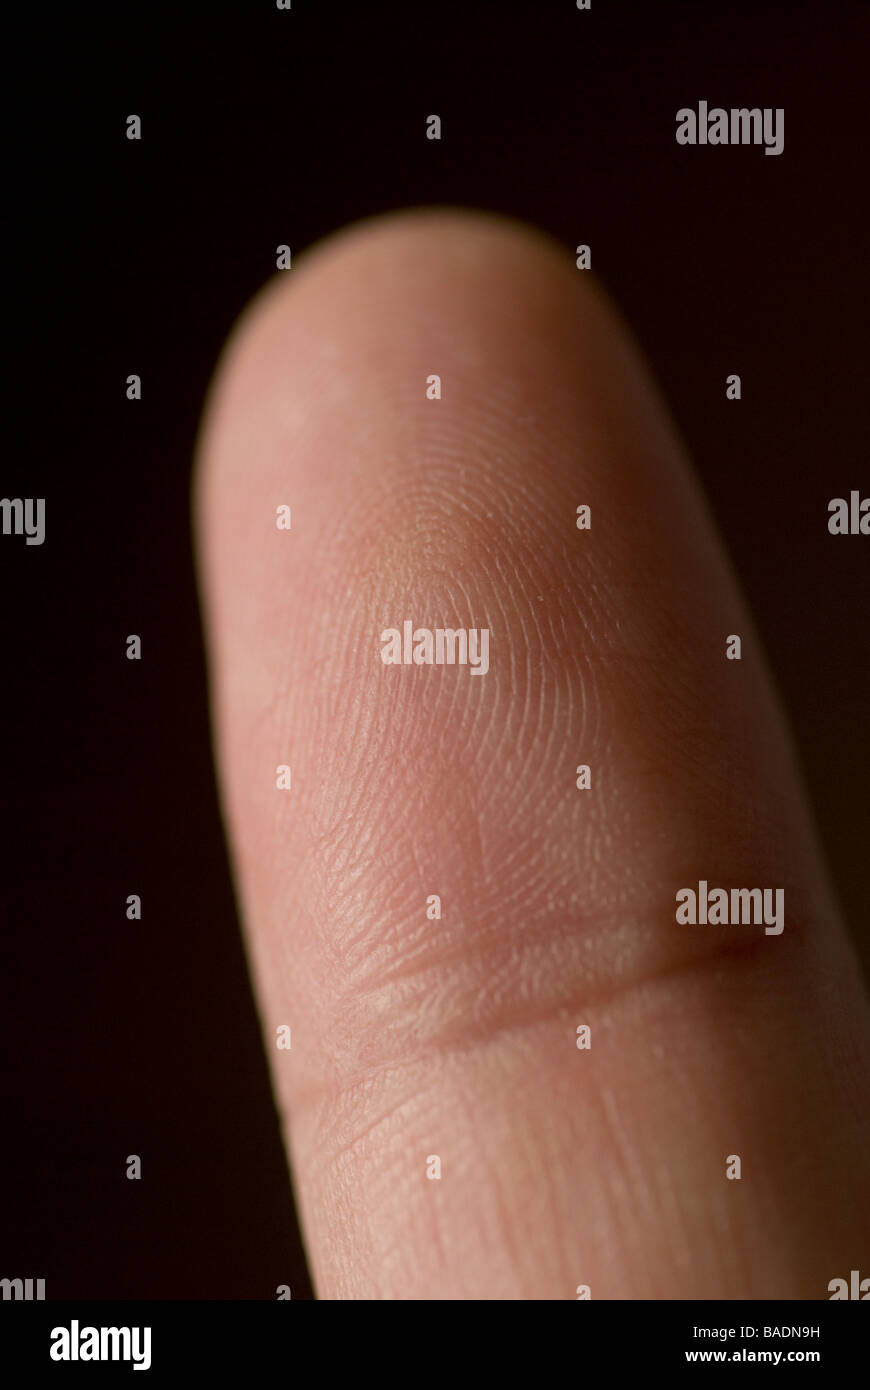 Close up of a man's index finger against a black background Stock Photo